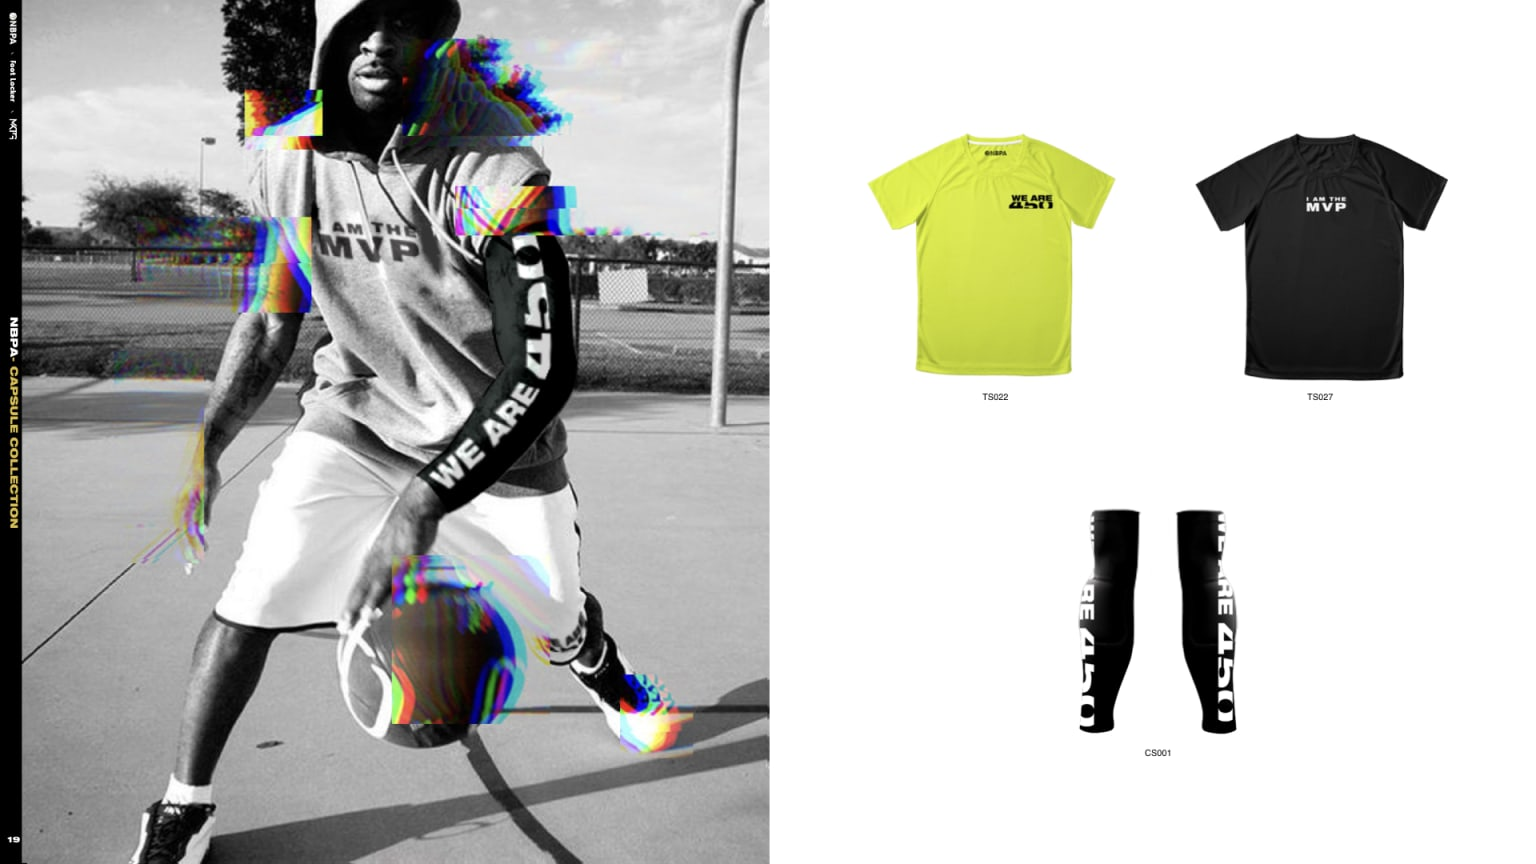 NBPA Player's Voice Awards & Capsule Collection